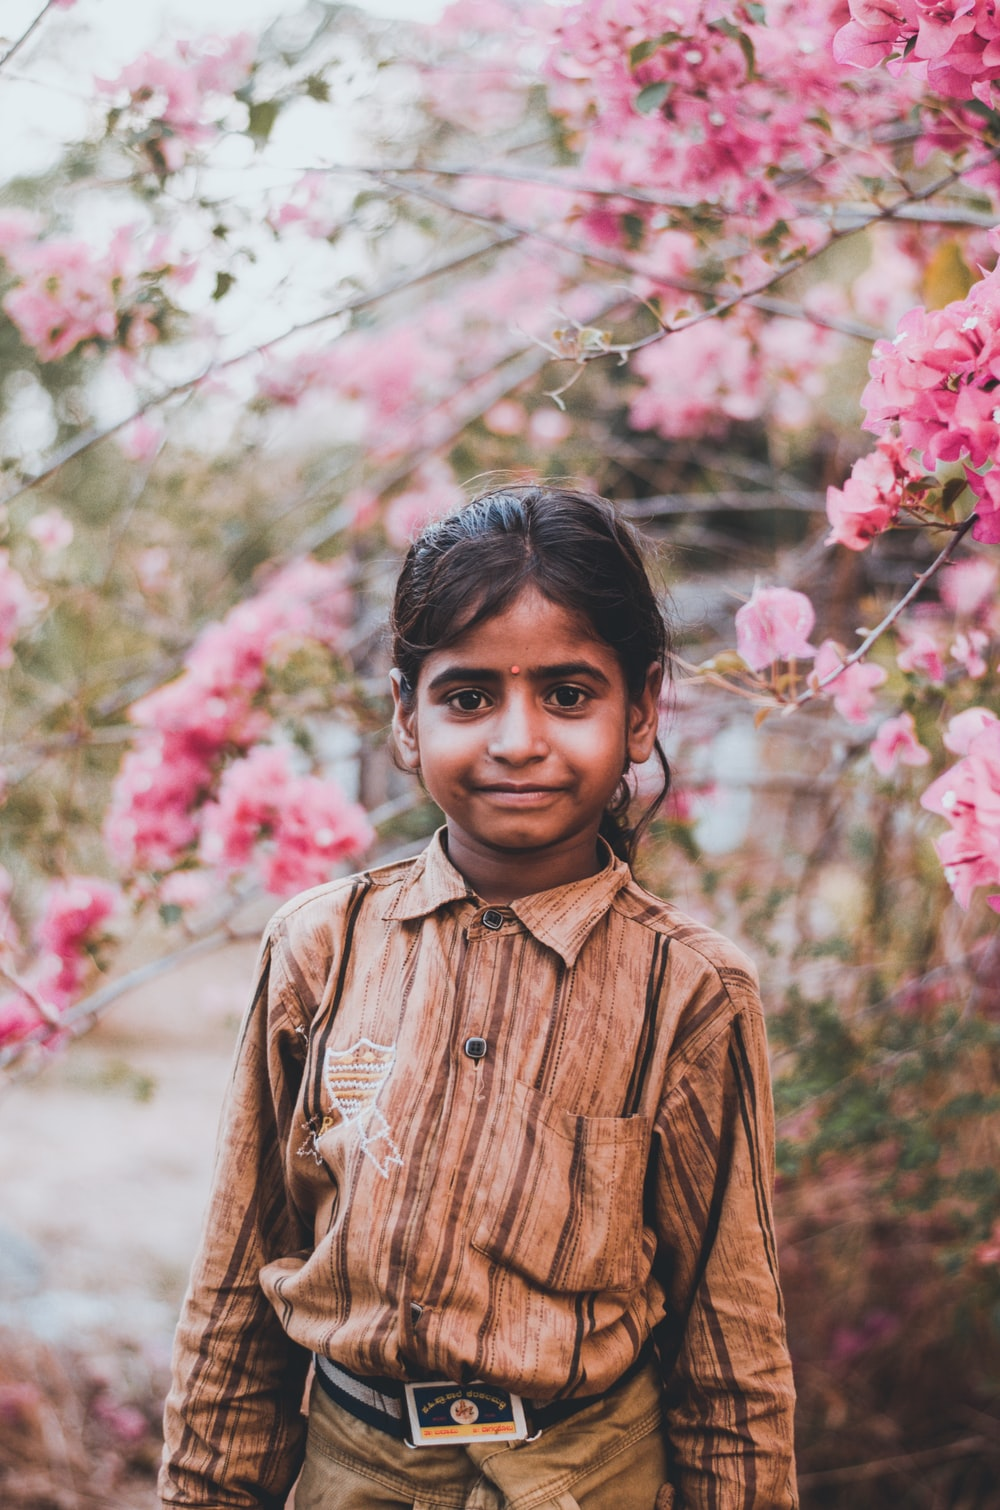 boy in brown button up shirt standing near pink flowers during daytime